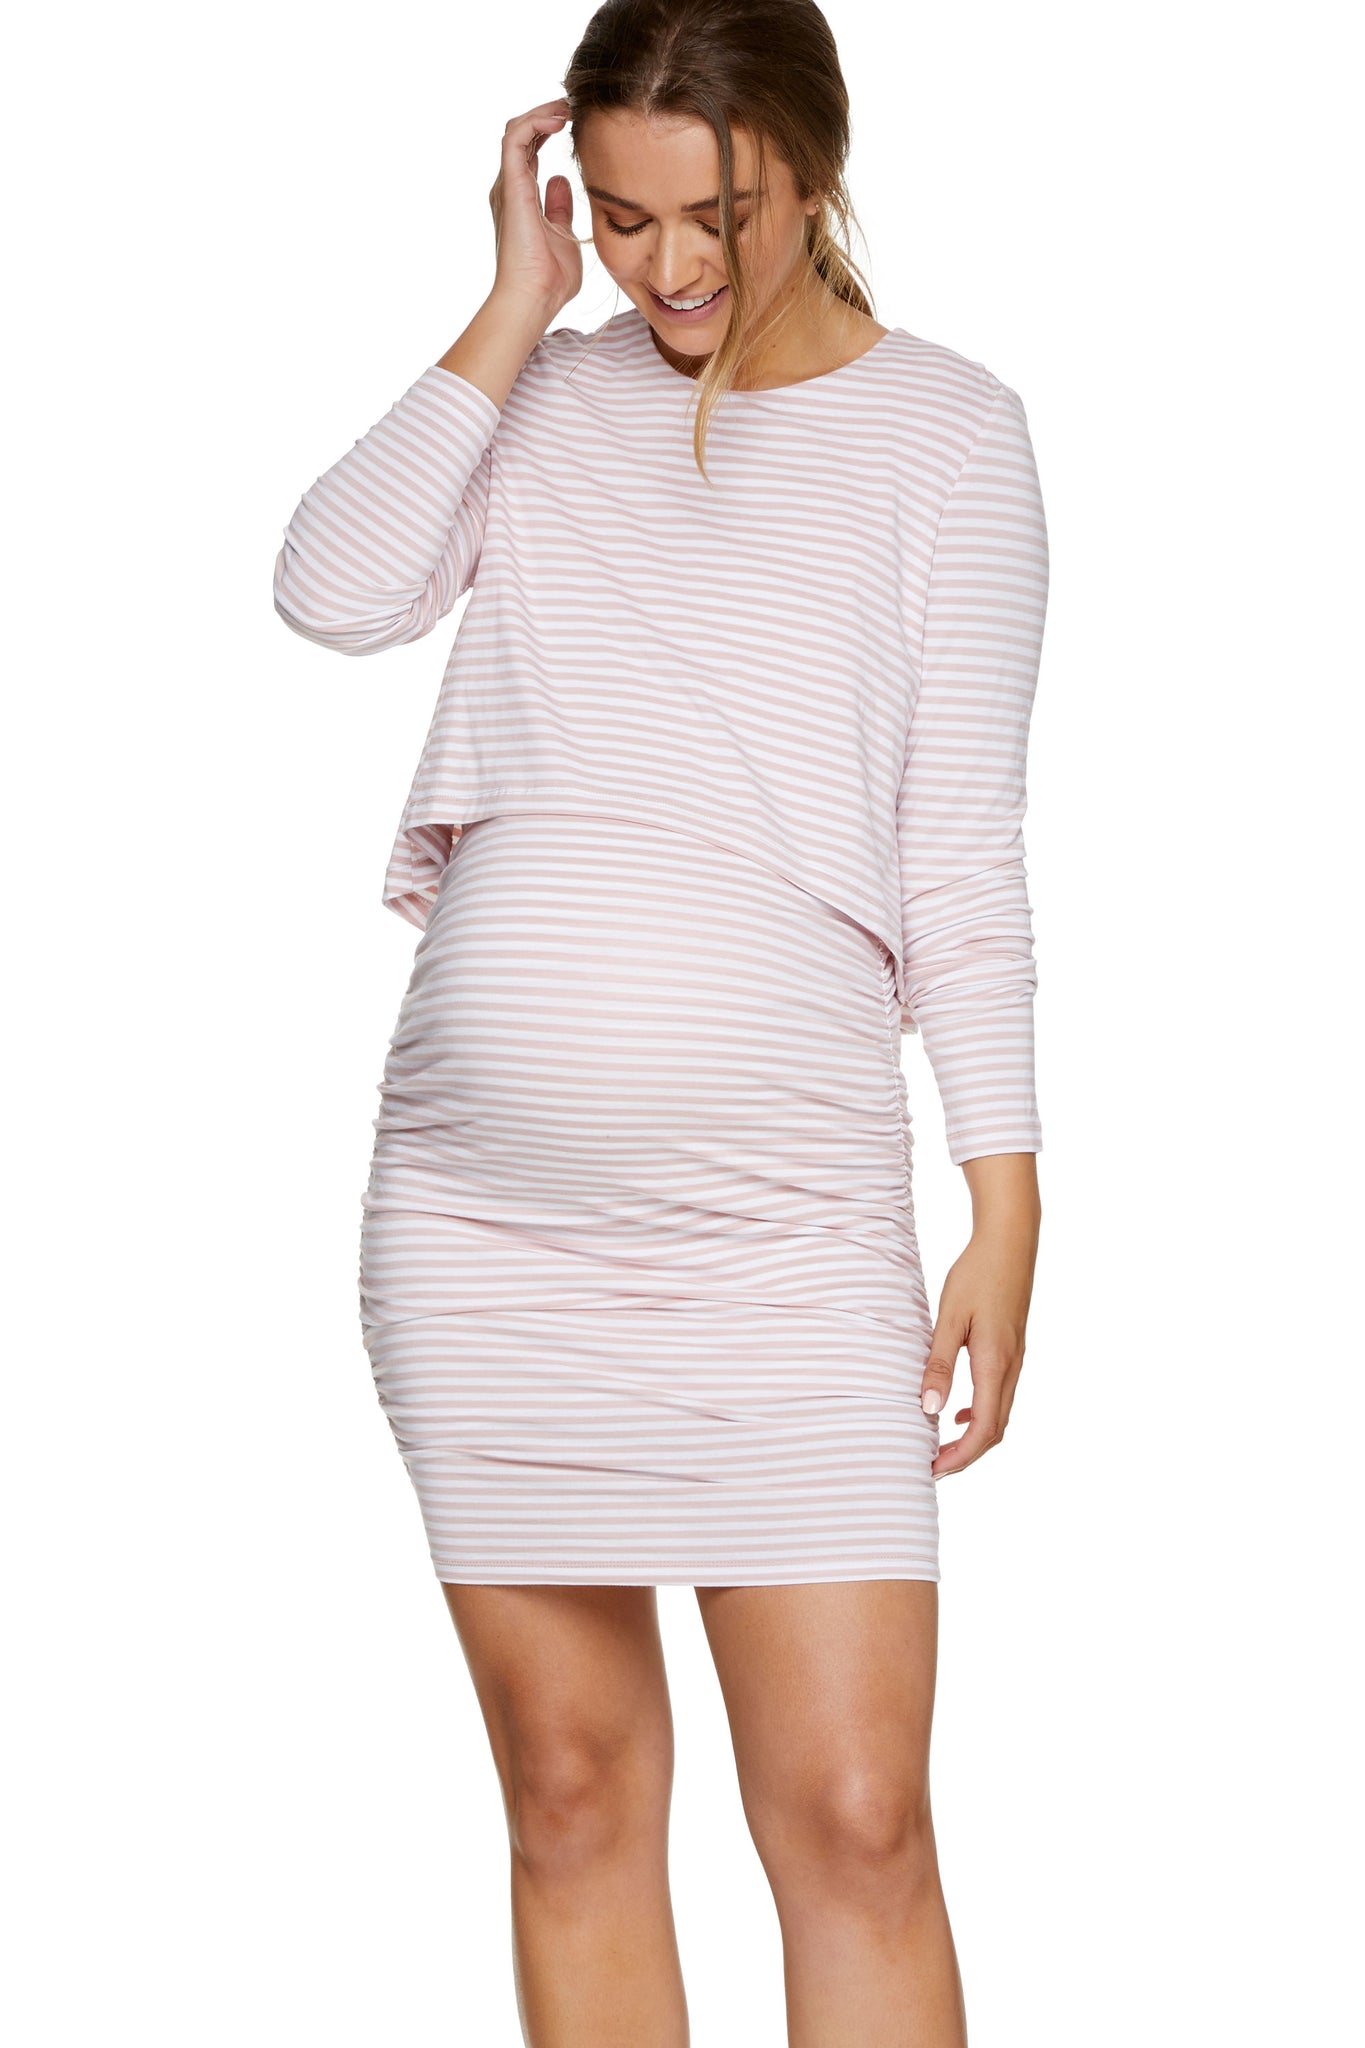 Pink long sleeve nursing dress 1